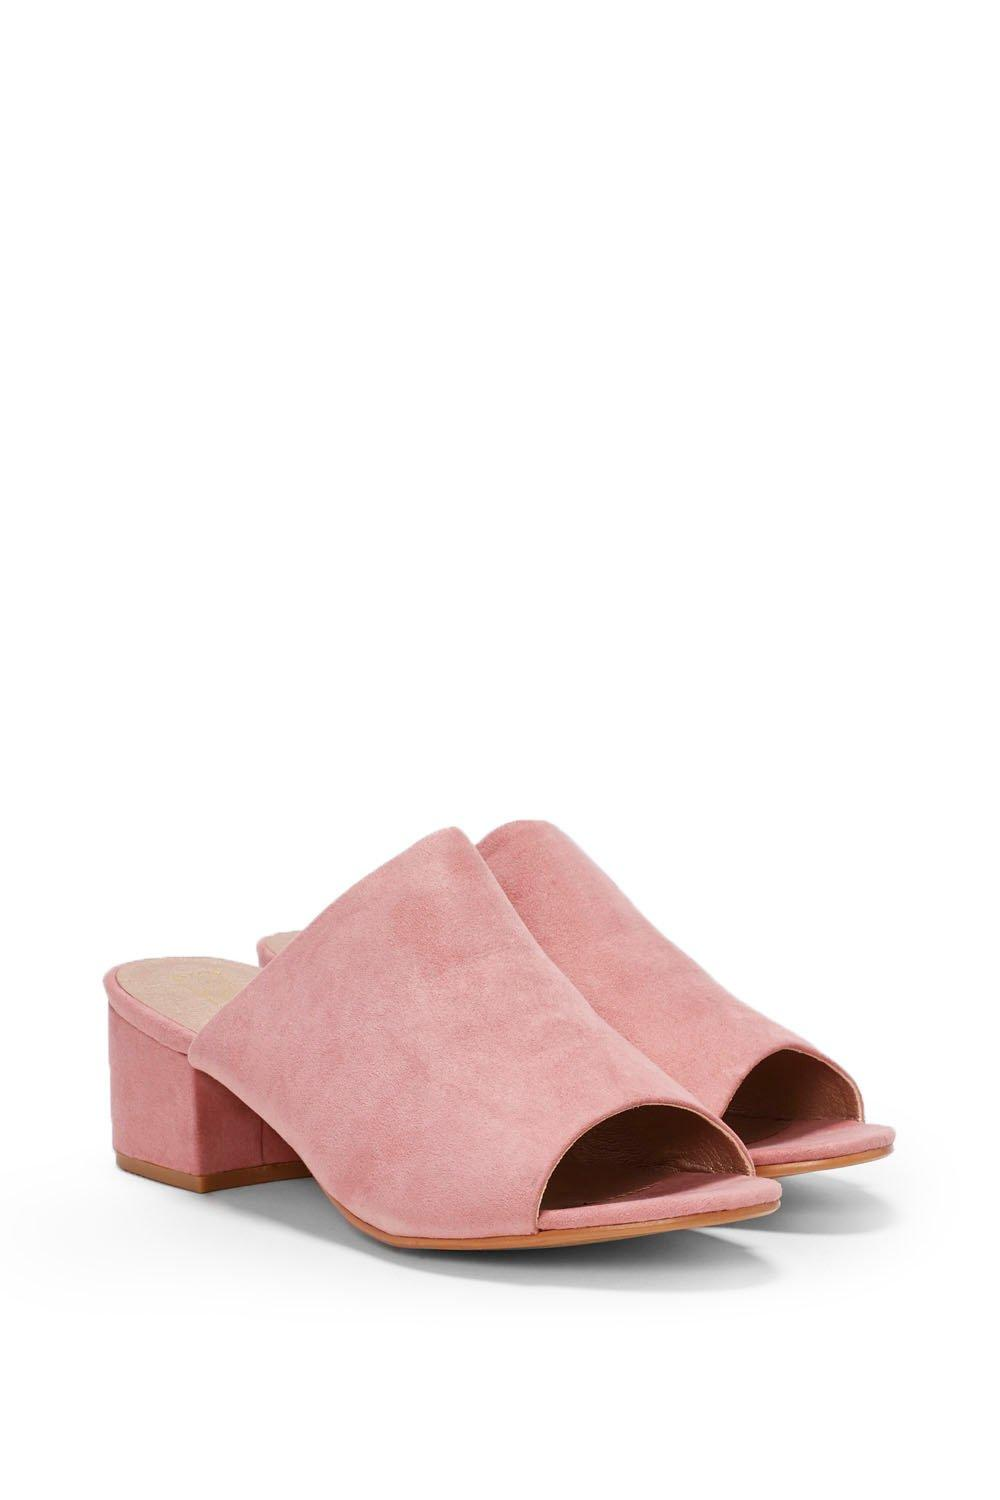 Vegan Suede Mules - Nasty Gal, Into the Groove Vegan Suede Mule, $75.00, Vegan Suede Mules